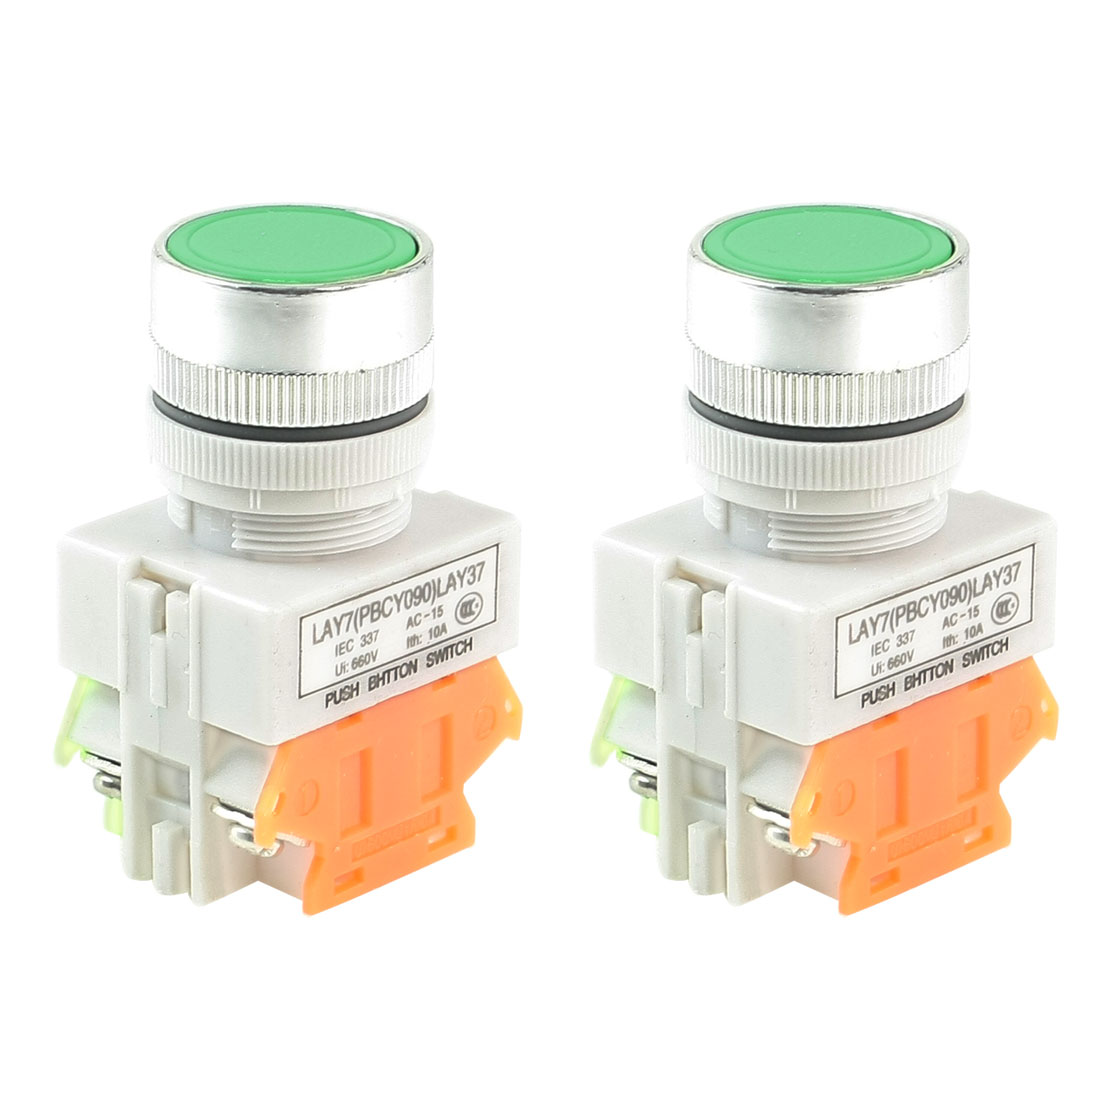 2 Pcs Round Green Cap 1NO 1NC Non Locking Push Button Switch AC 660V 10A